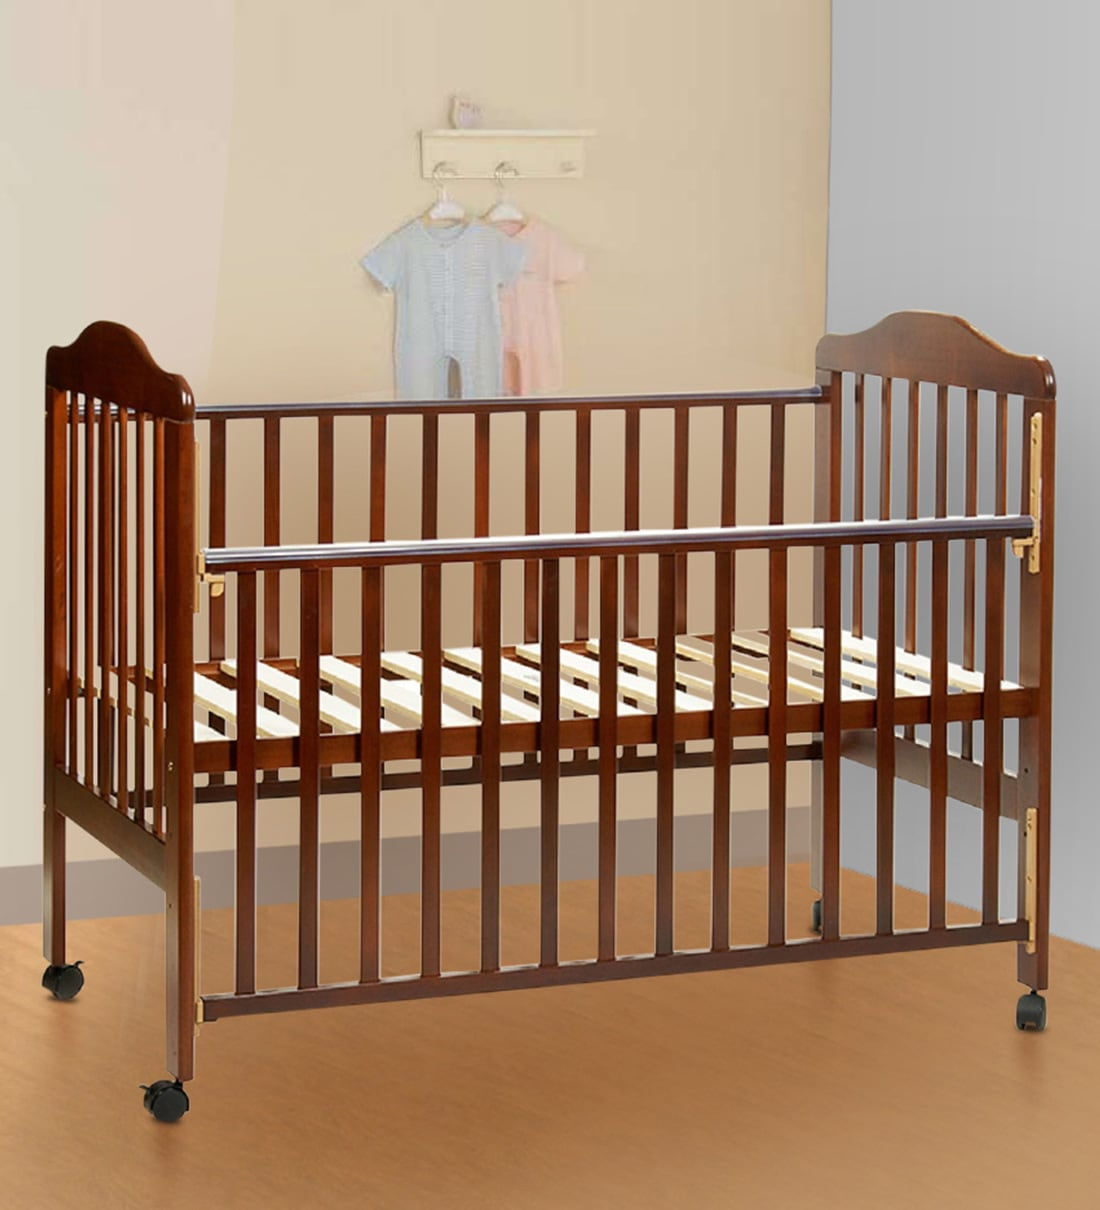 Global Baby Solid Wood Furniture Market 2020 Industry ...